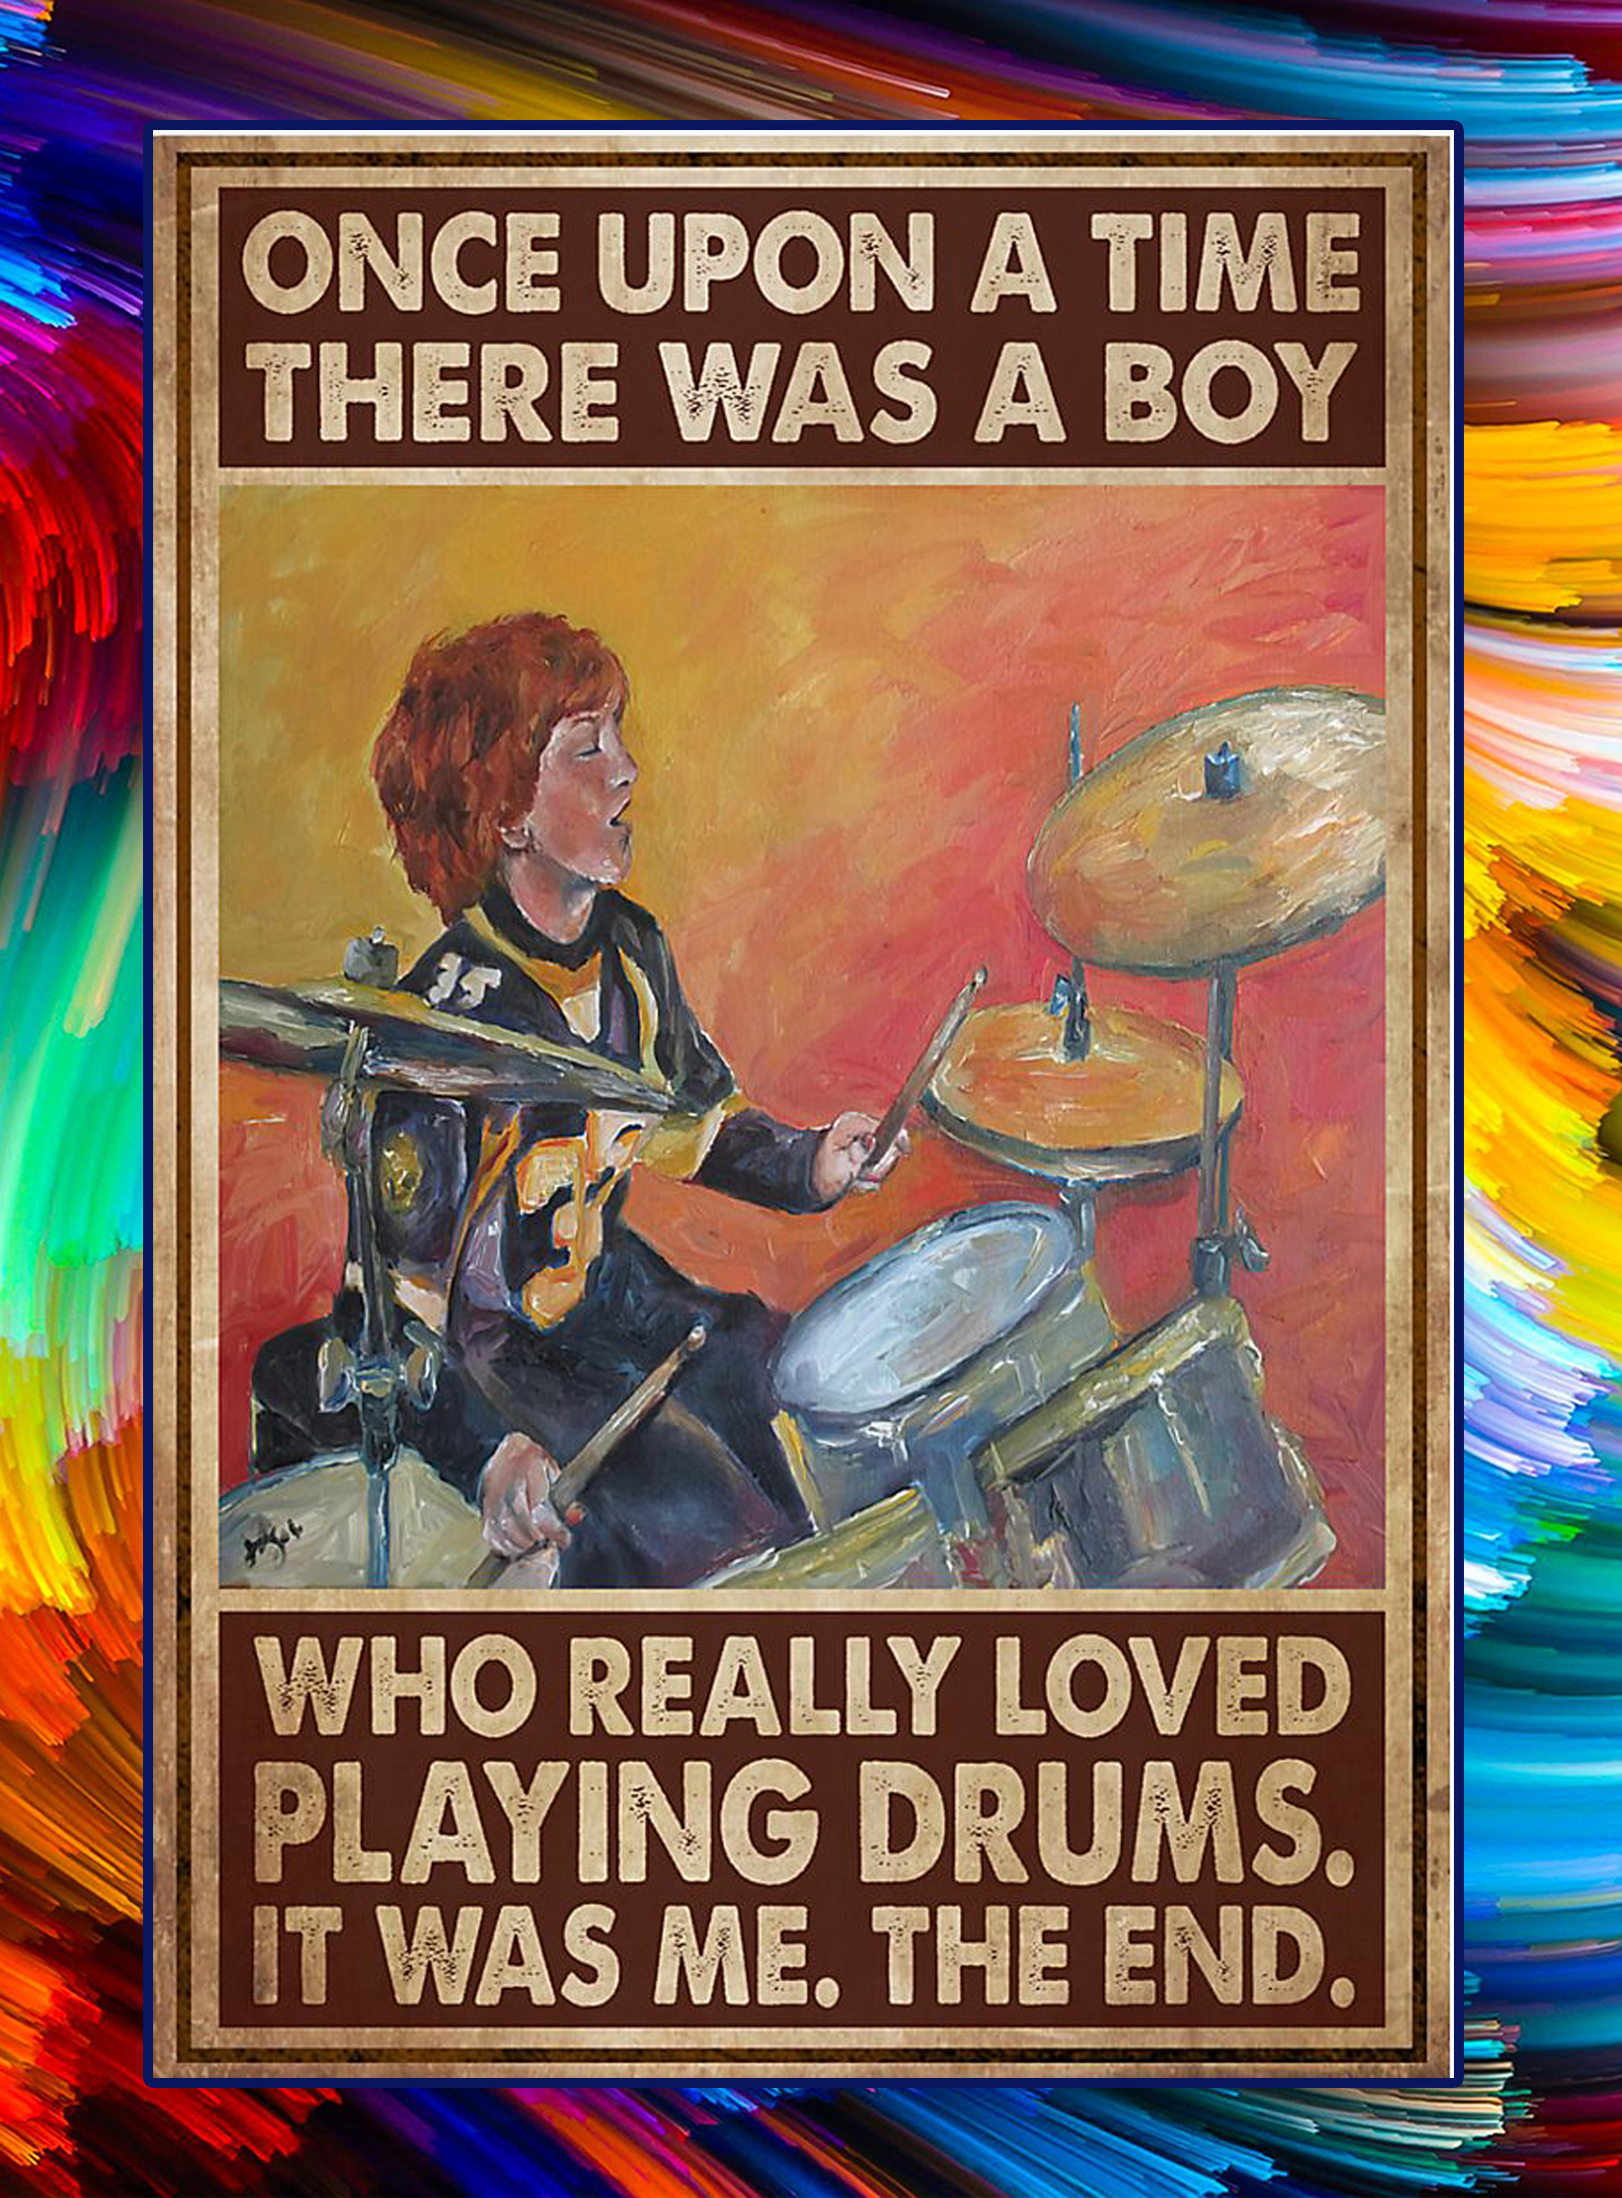 Once upon a time there was a boy who really loved playing drums poster - A3